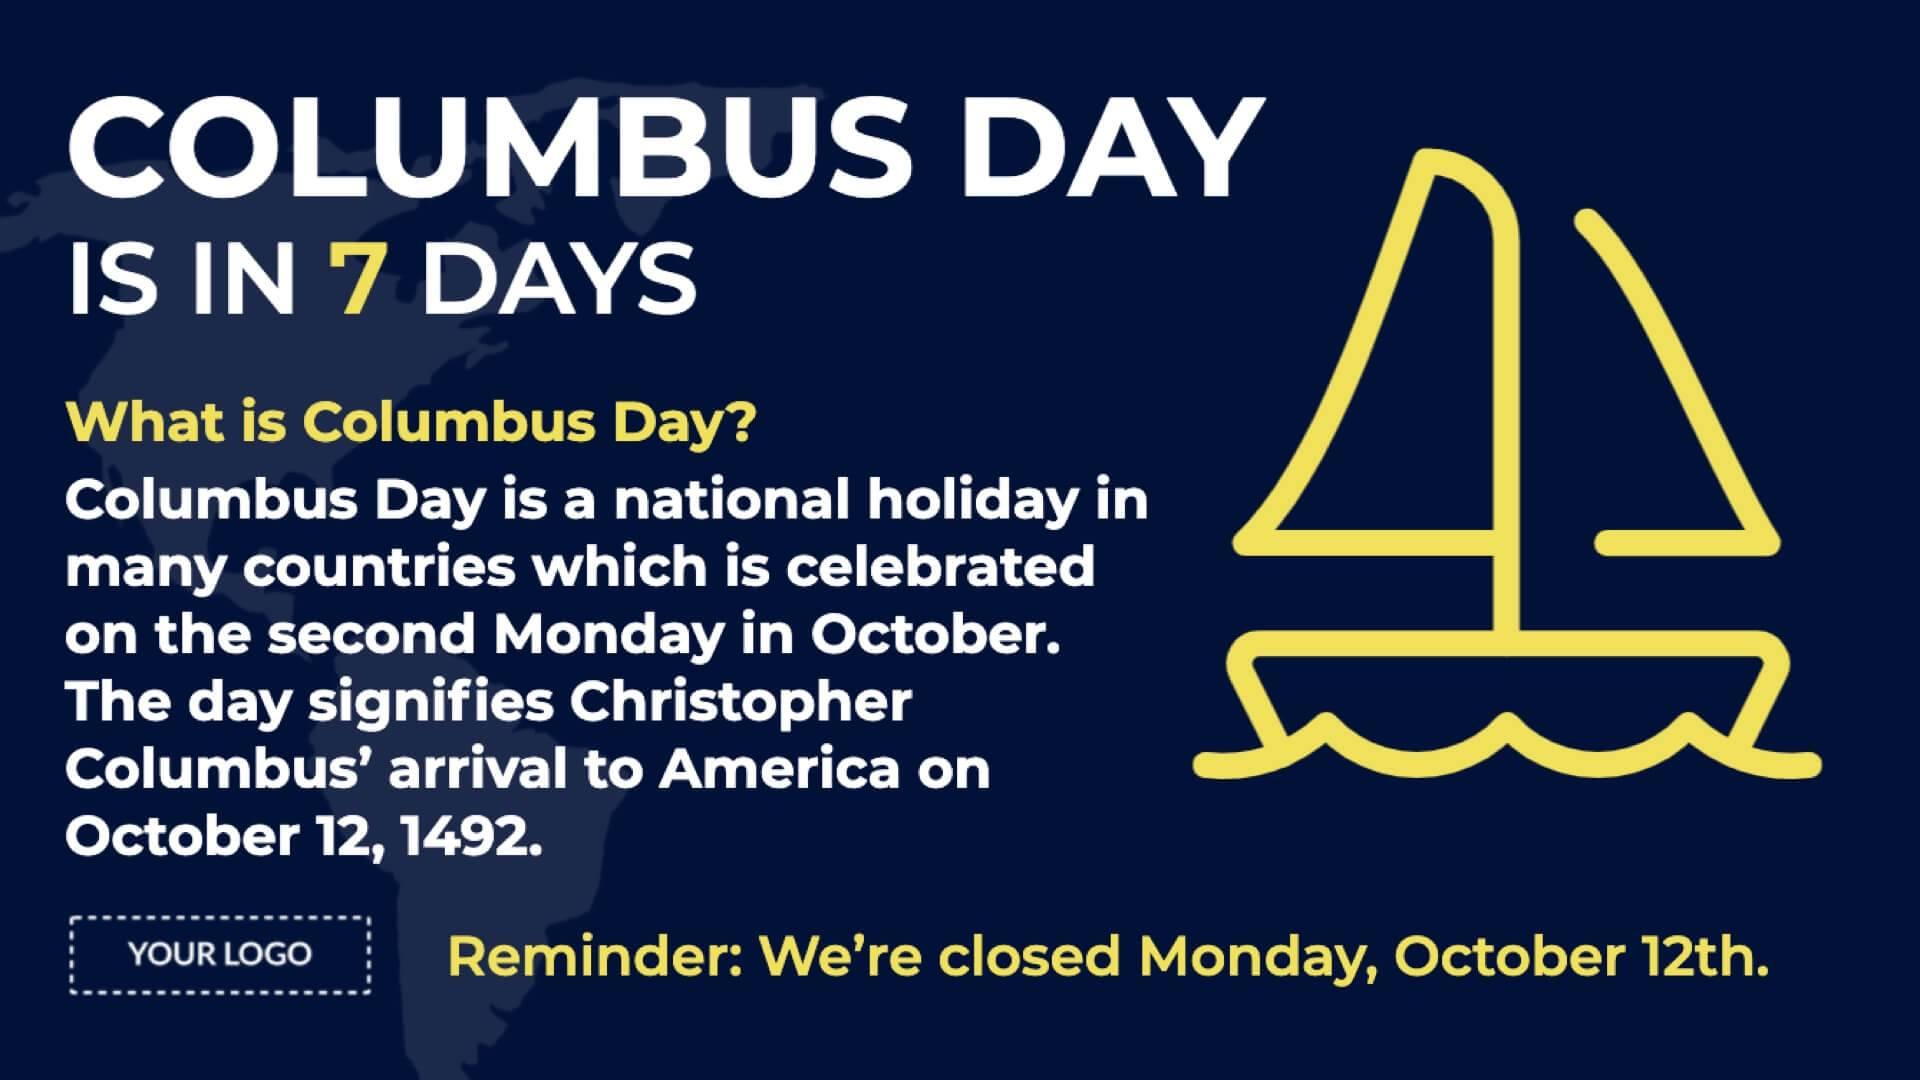 Holiday Columbus Day Digital Signage Template